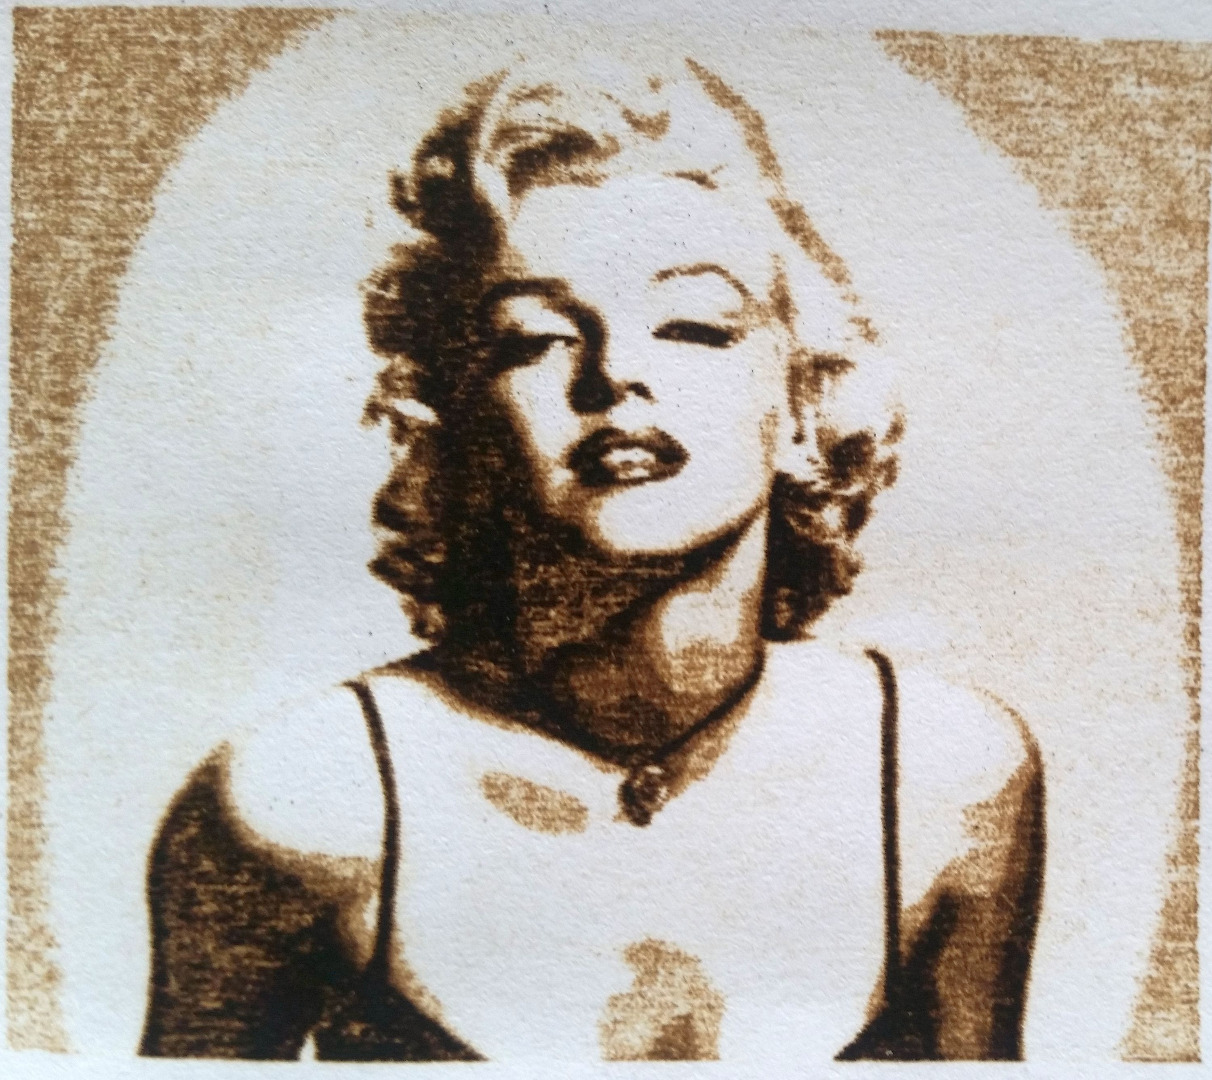 Monroe on paper